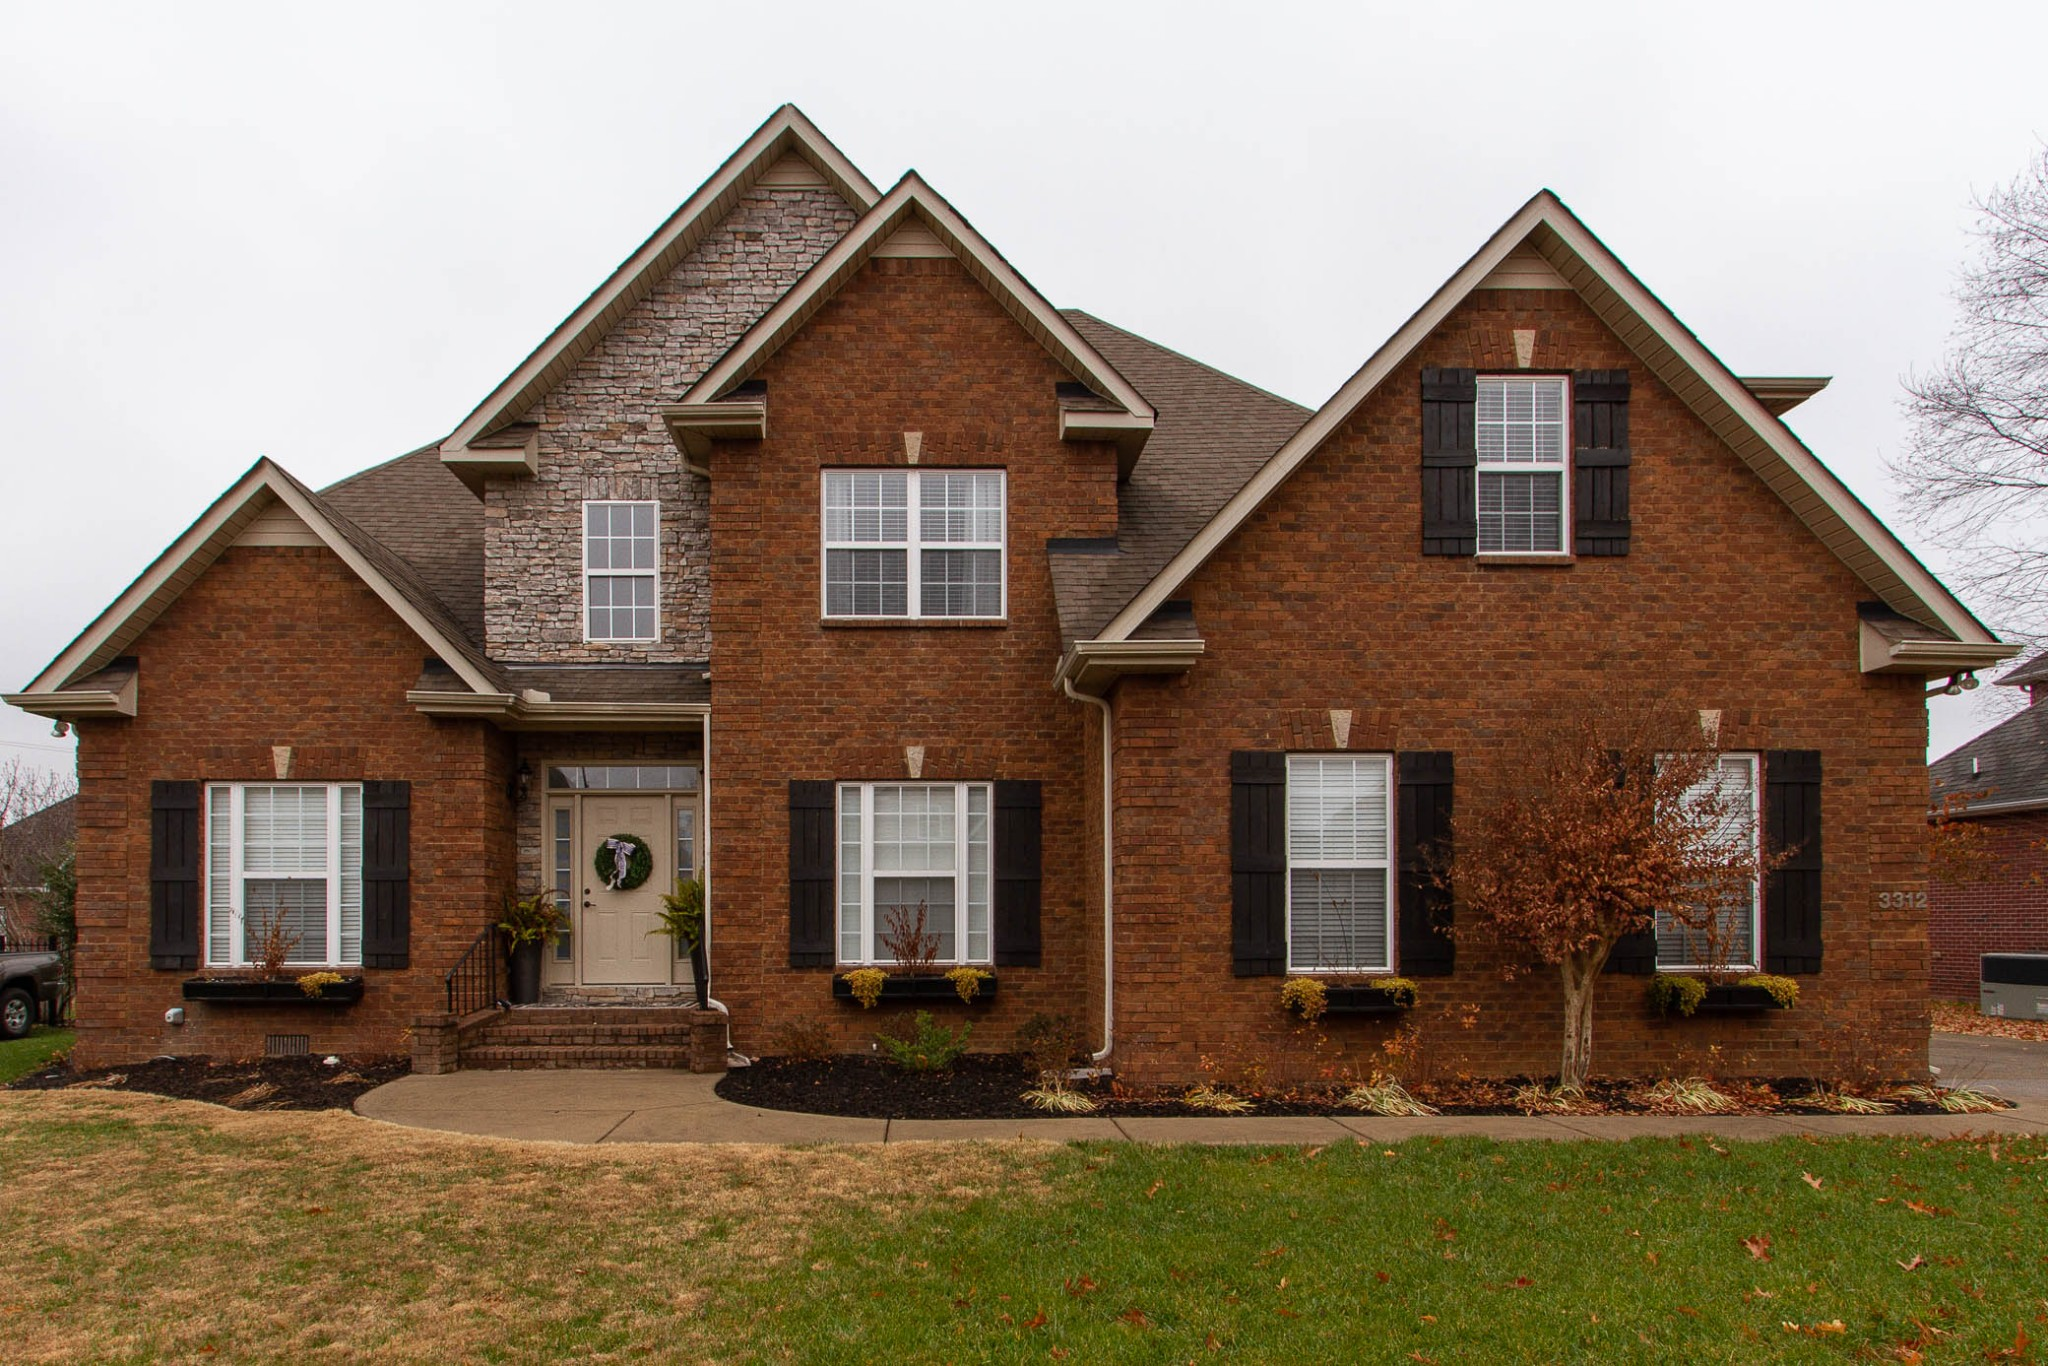 3312 Geneva Dr Property Photo - Murfreesboro, TN real estate listing